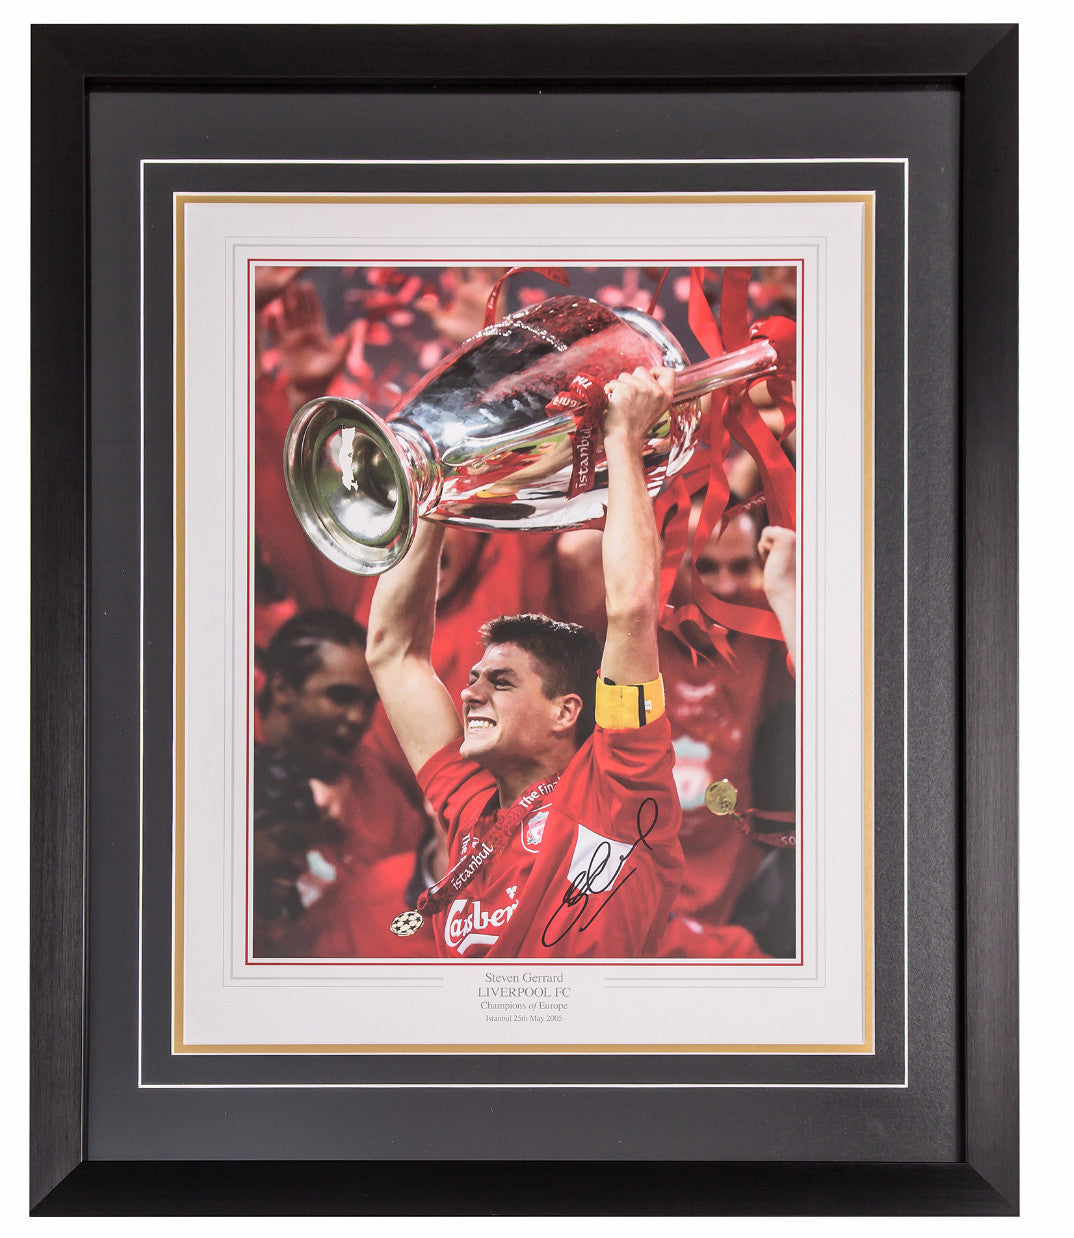 Steven Gerrard Signed Liverpool Champions League Winners Photo - Premium Framed